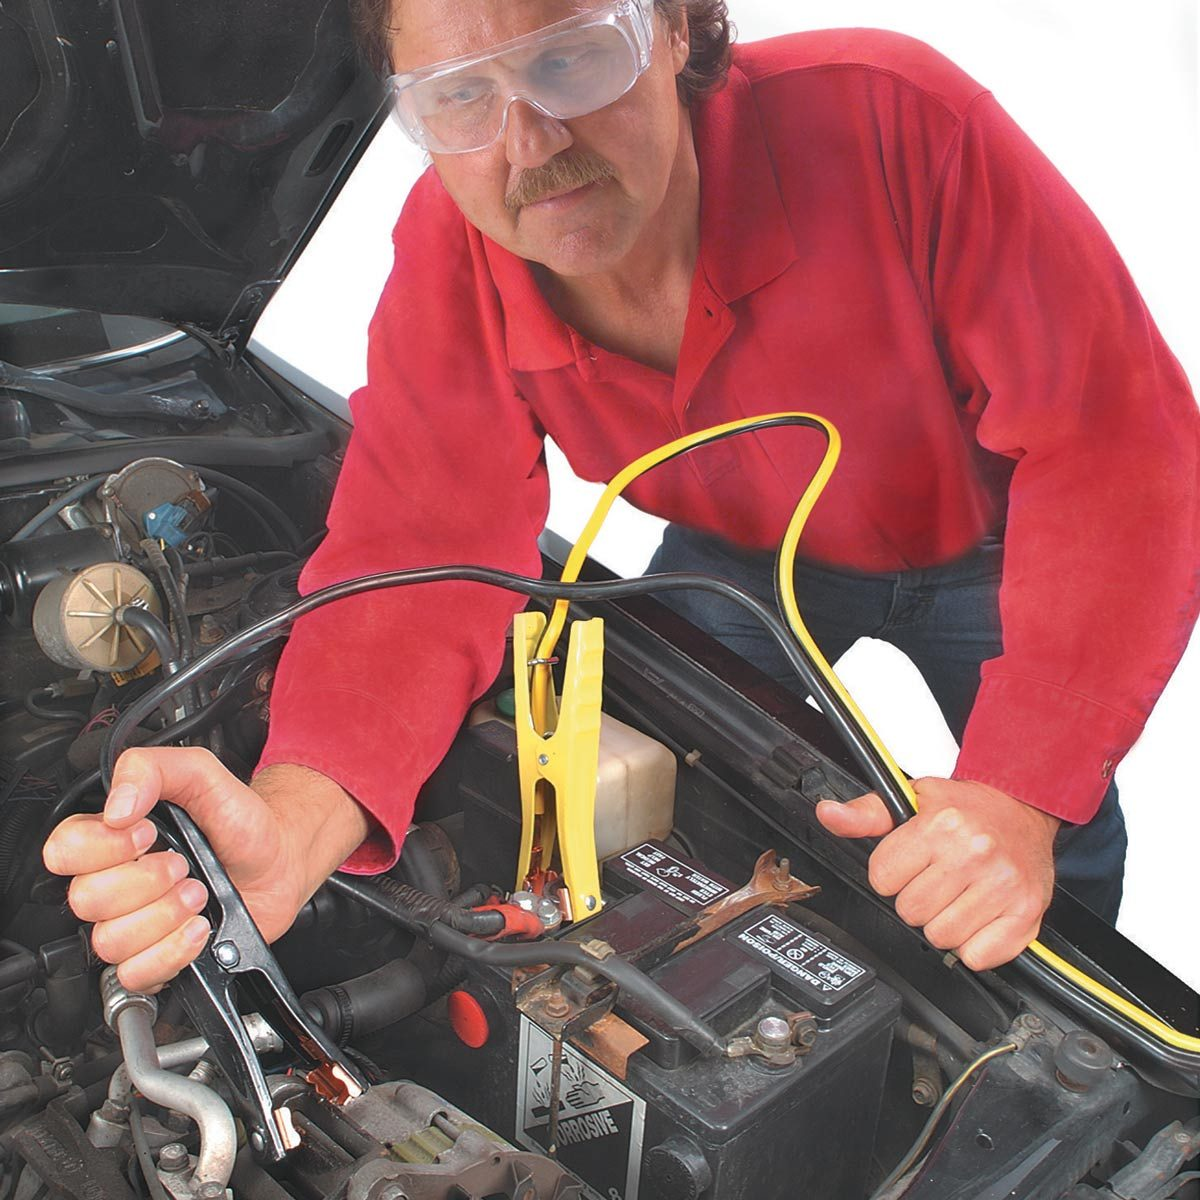 100 Super Simple Car Repairs You Dont Need To Go The Shop For Universal Furnace Ignition Kit Wiring Diagram Jump Start